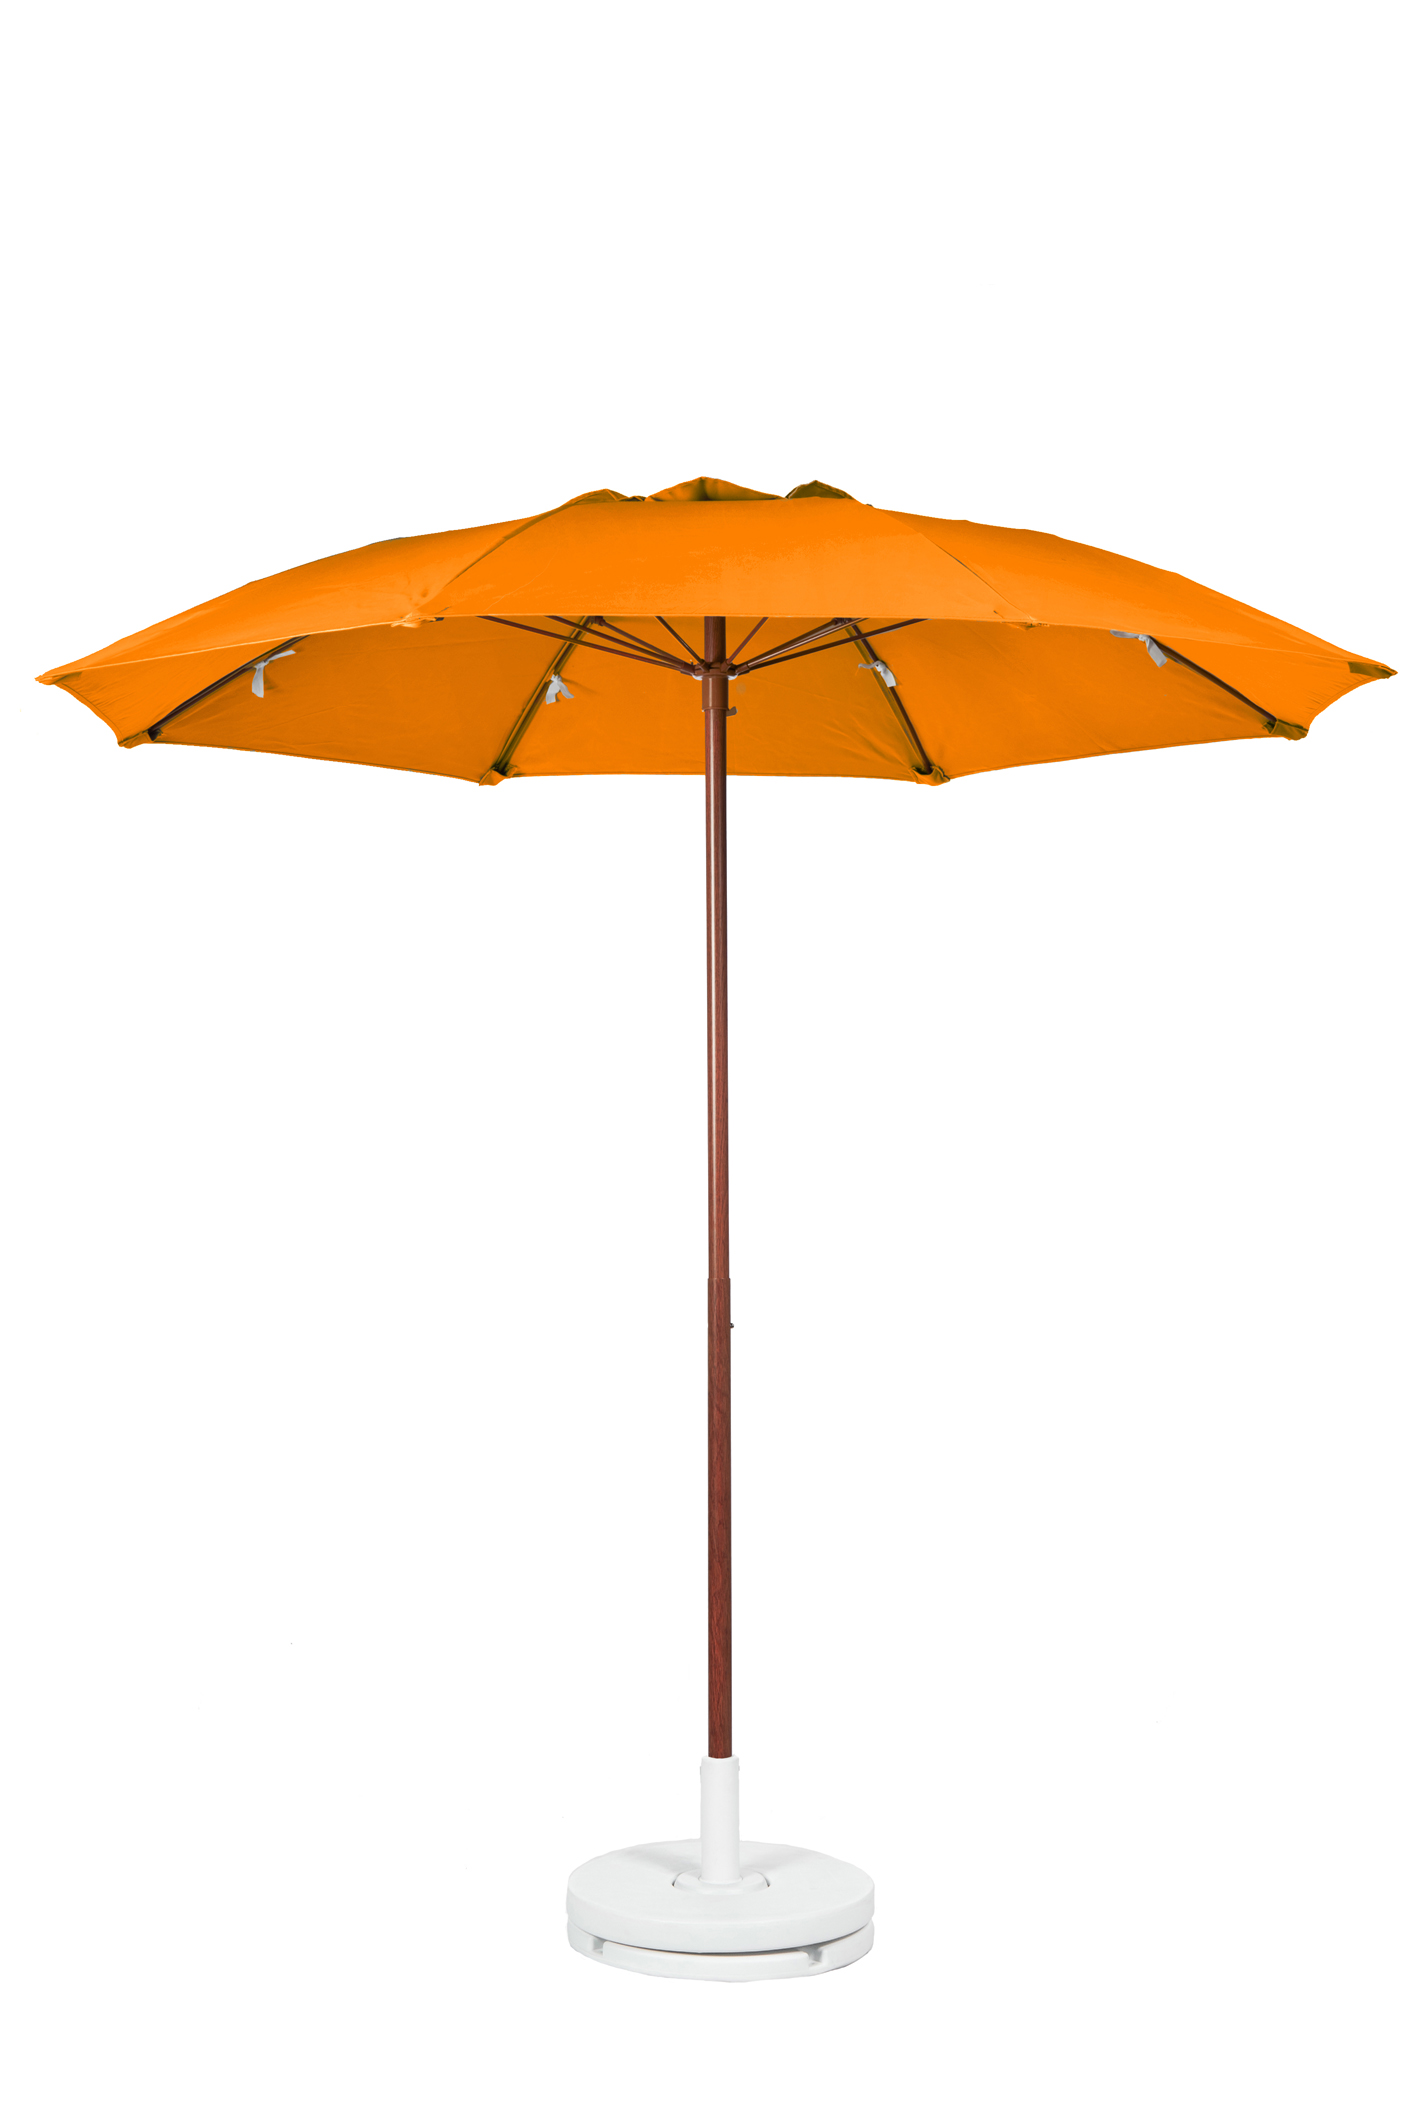 7.5′ PATIO UMBRELLA WITH FIBERGLASS SKELETON WITH VENT & NO VALANCE Stock Fabric:$219.00 Custom Fabric:$279.00 *Tilt Available For An Additional $10.00